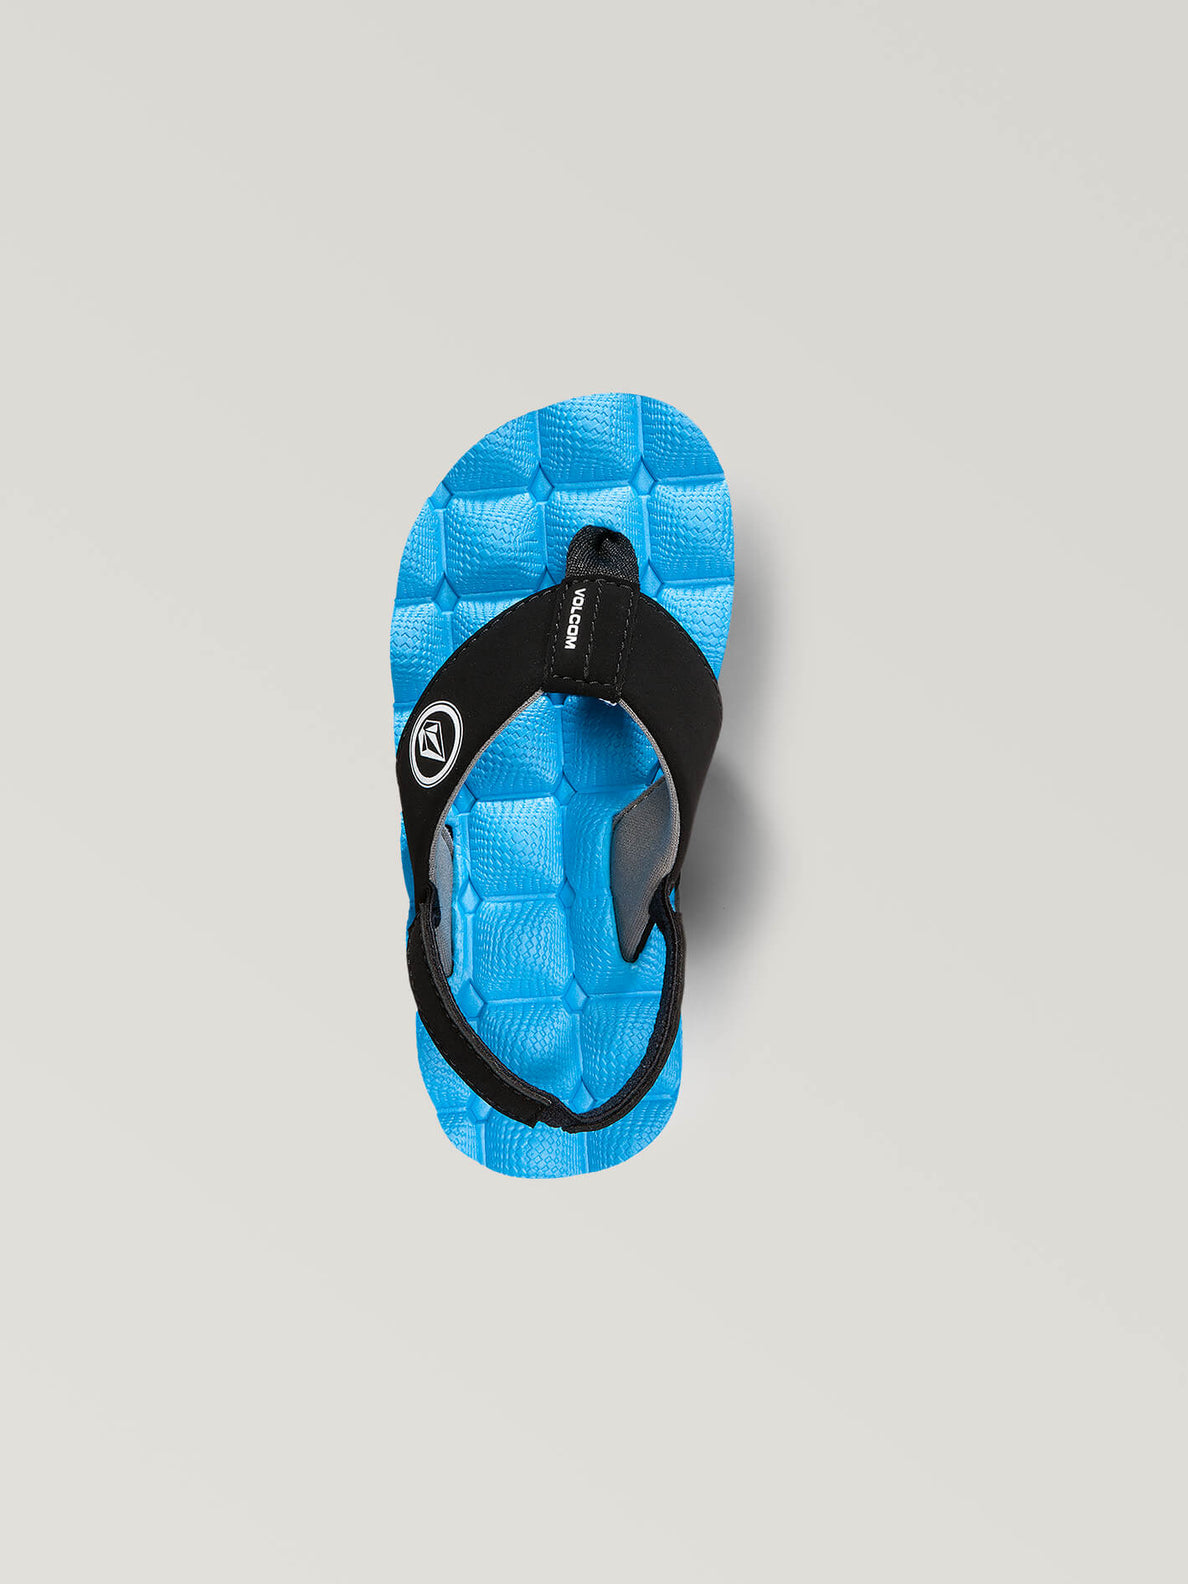 Little Boys Recliner Sandal - Marina Blue (U0811520_MRB) [2]